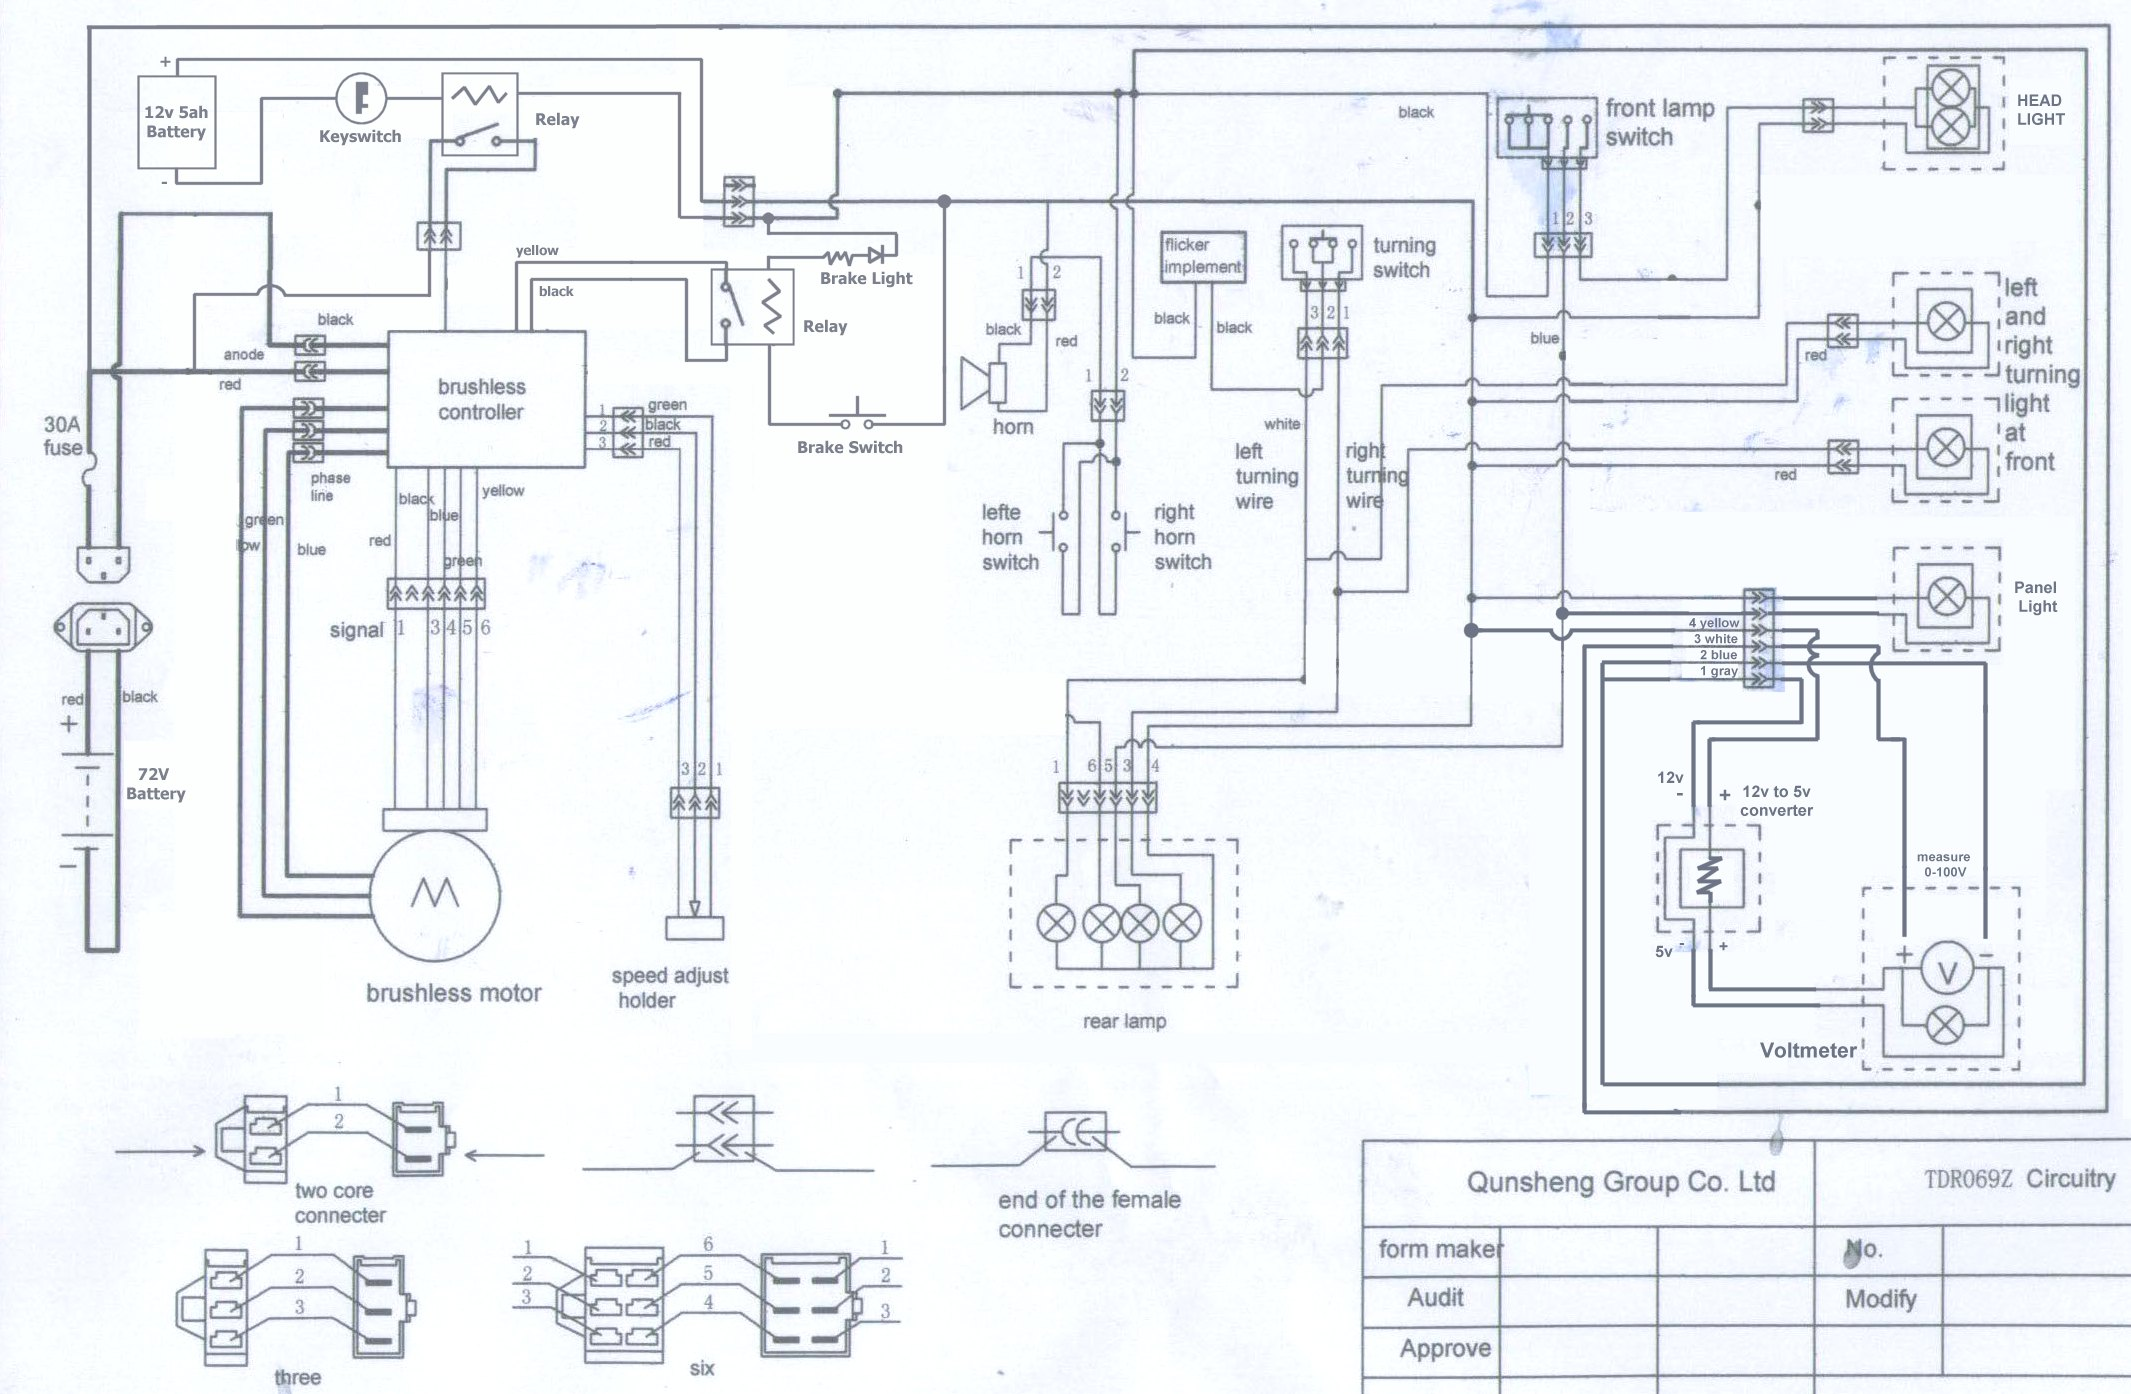 Index of /temp on troubleshooting diagrams, led circuit diagrams, electrical diagrams, sincgars radio configurations diagrams, internet of things diagrams, series and parallel circuits diagrams, smart car diagrams, pinout diagrams, engine diagrams, friendship bracelet diagrams, gmc fuse box diagrams, motor diagrams, hvac diagrams, transformer diagrams, battery diagrams, honda motorcycle repair diagrams, electronic circuit diagrams, lighting diagrams, switch diagrams,